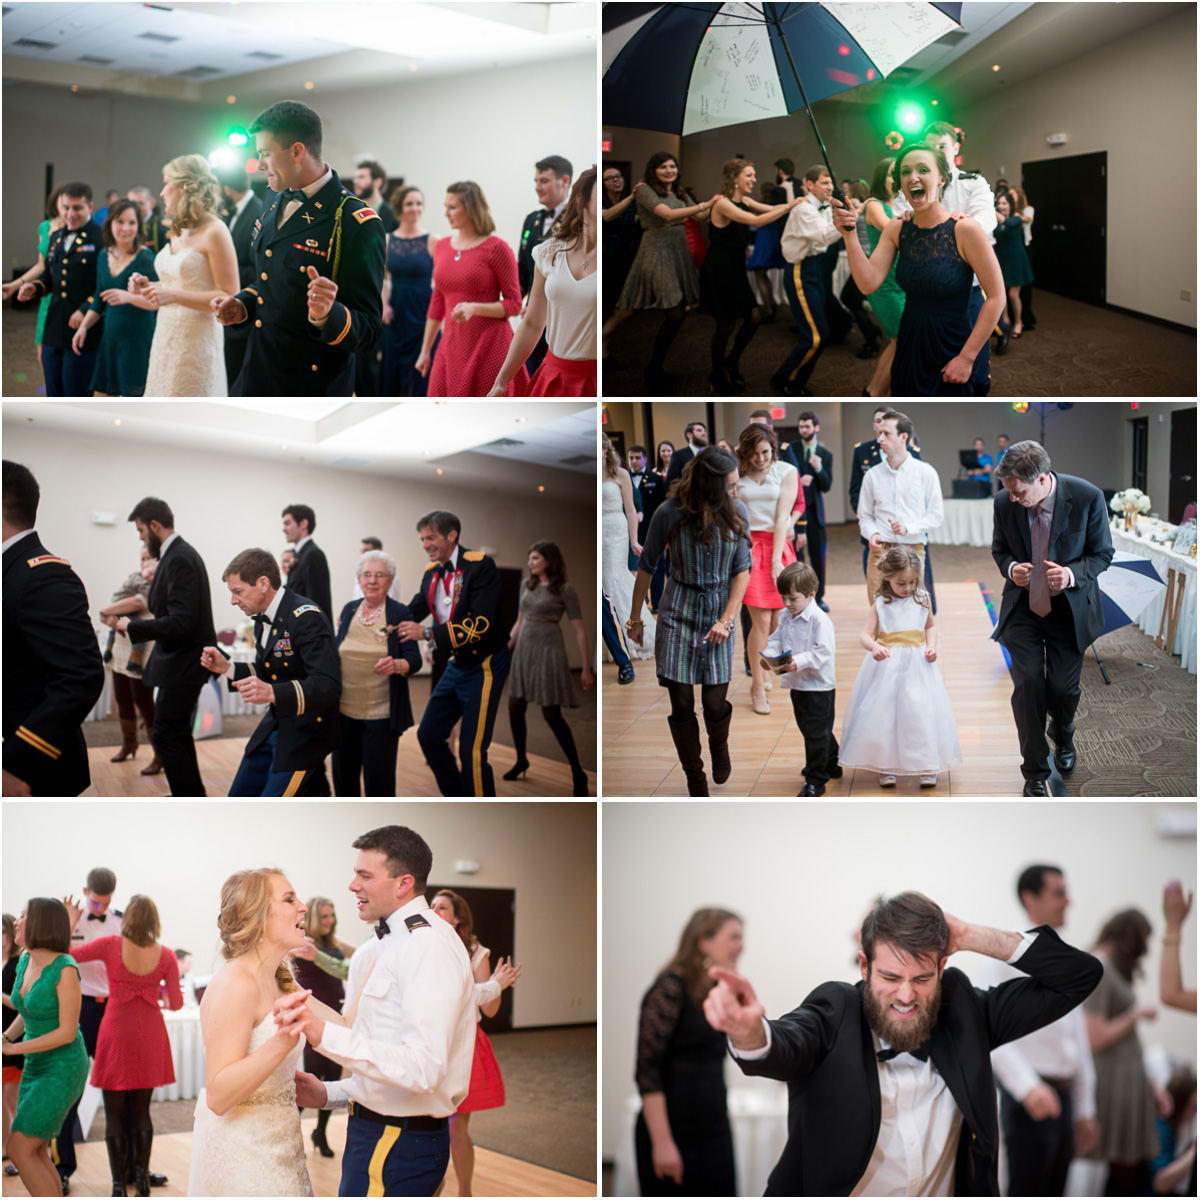 fun dance floor photos